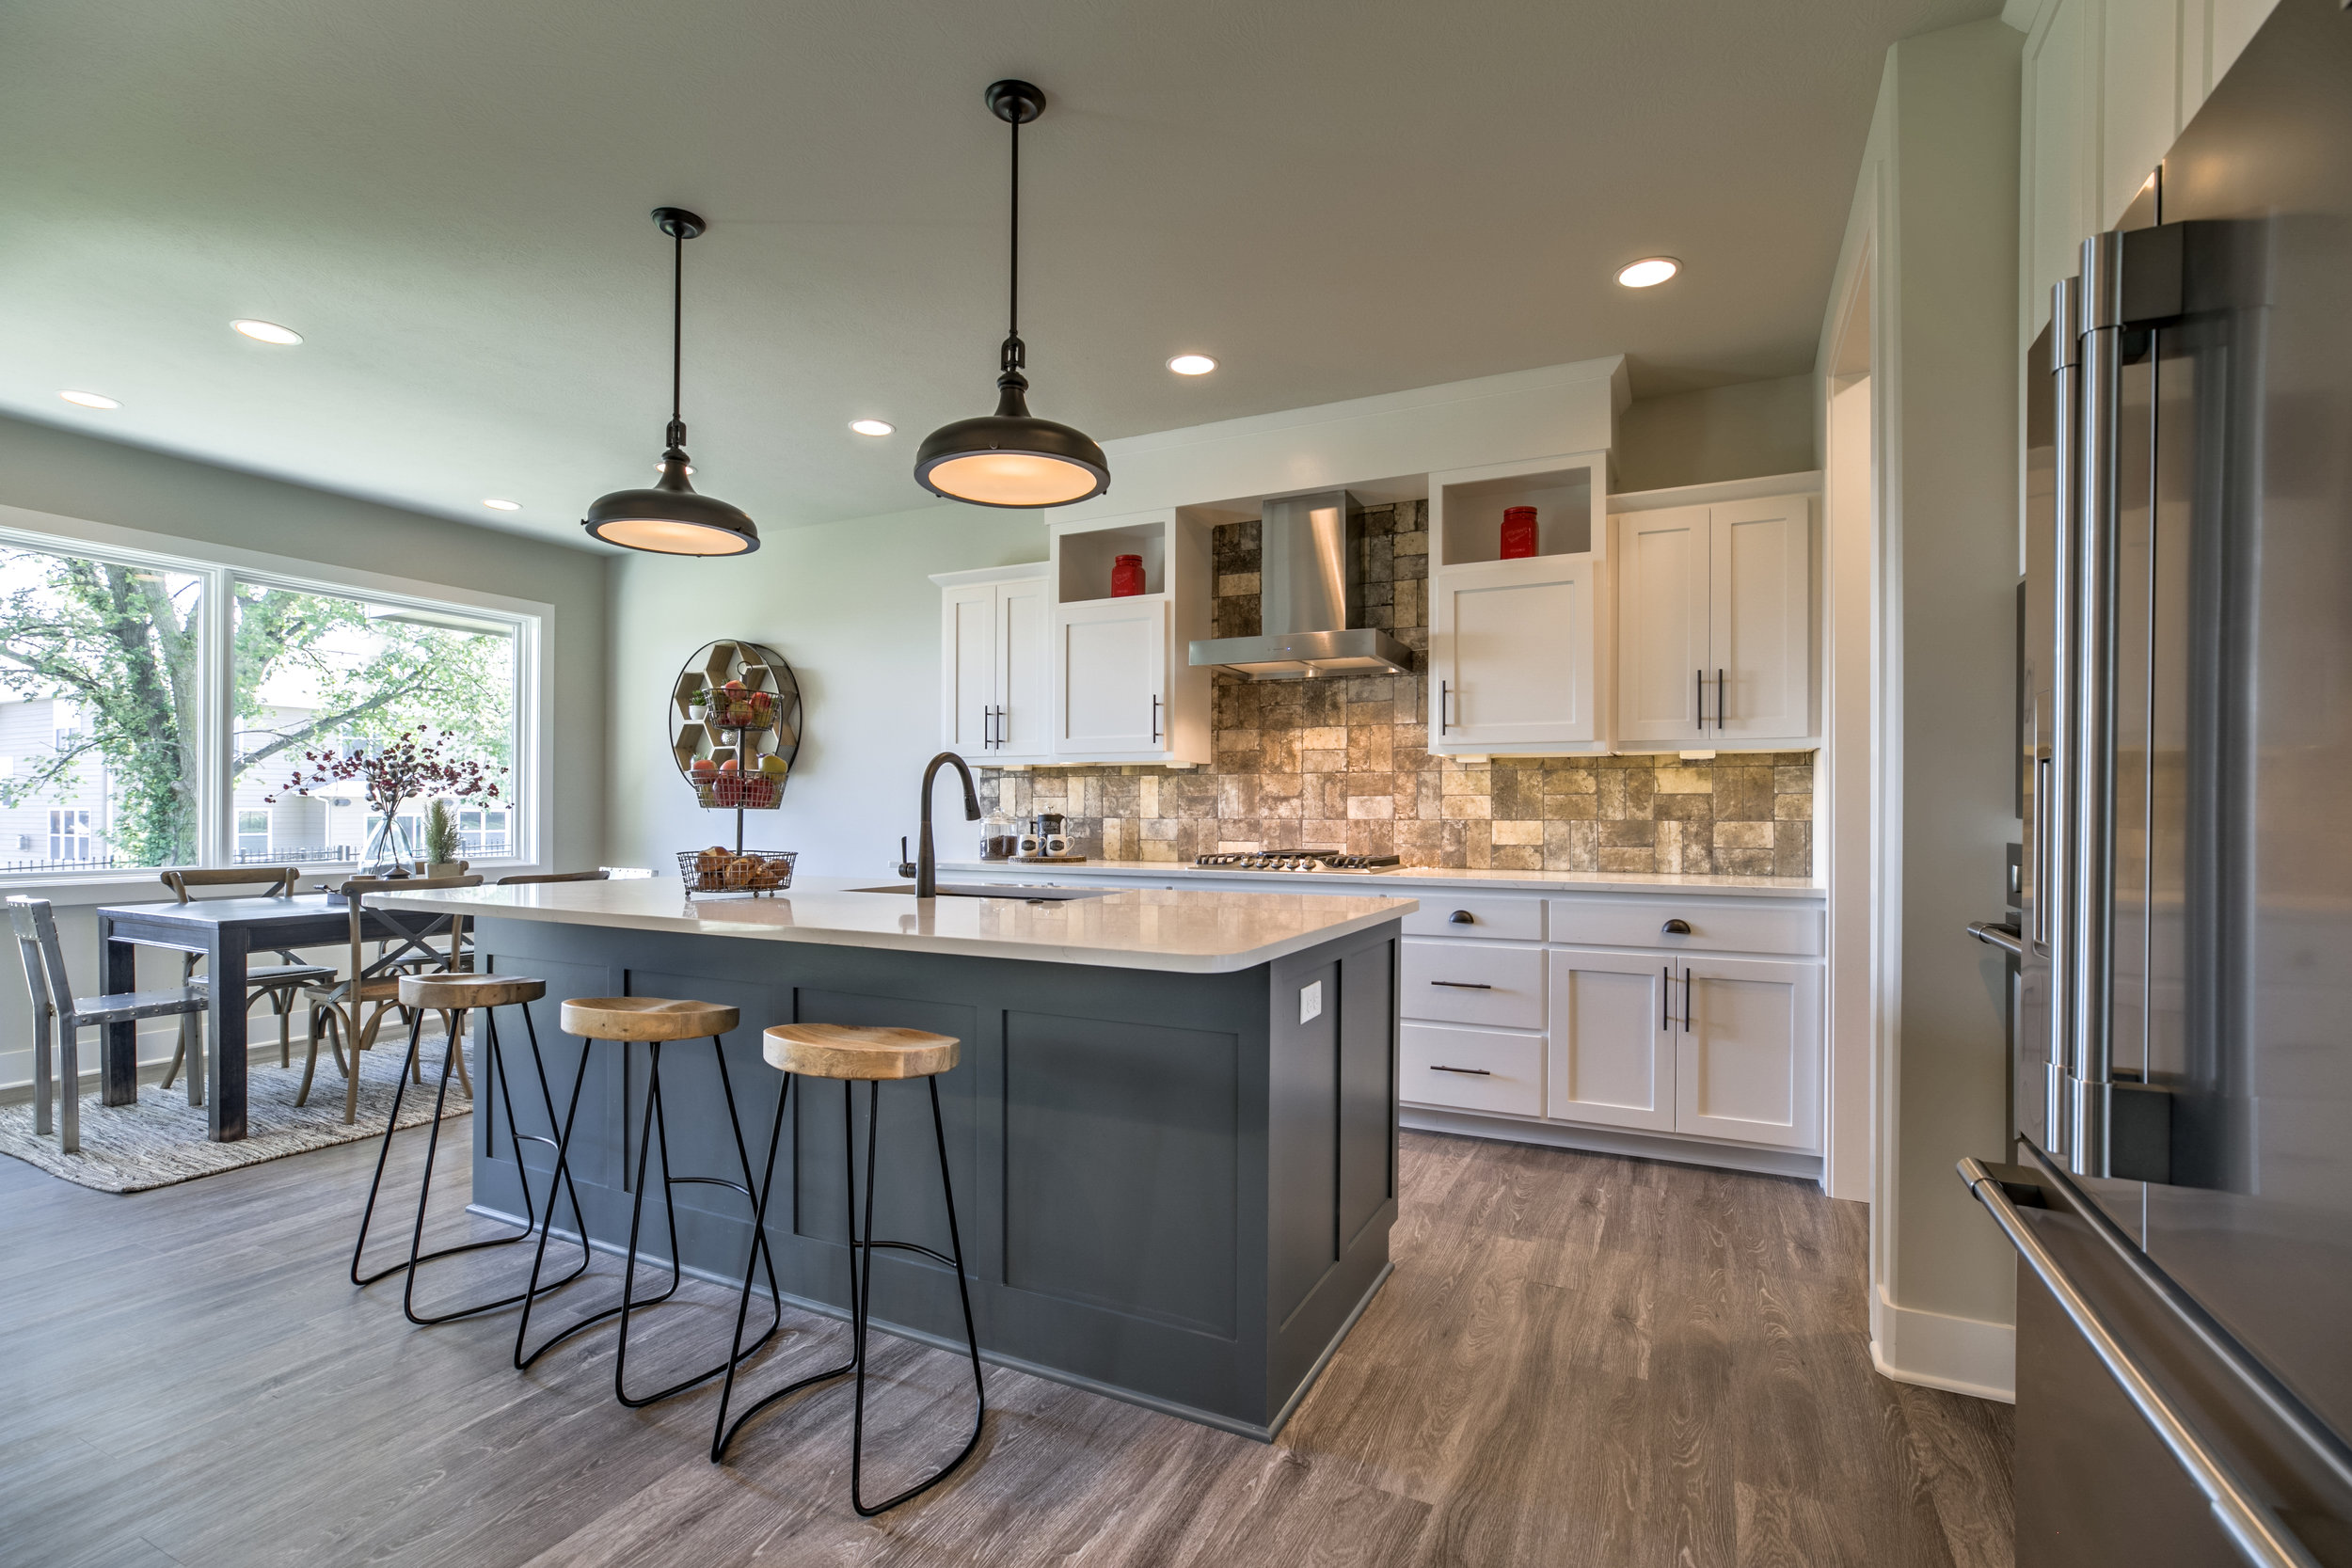 The Kitchen | Laid Back Lifestyle